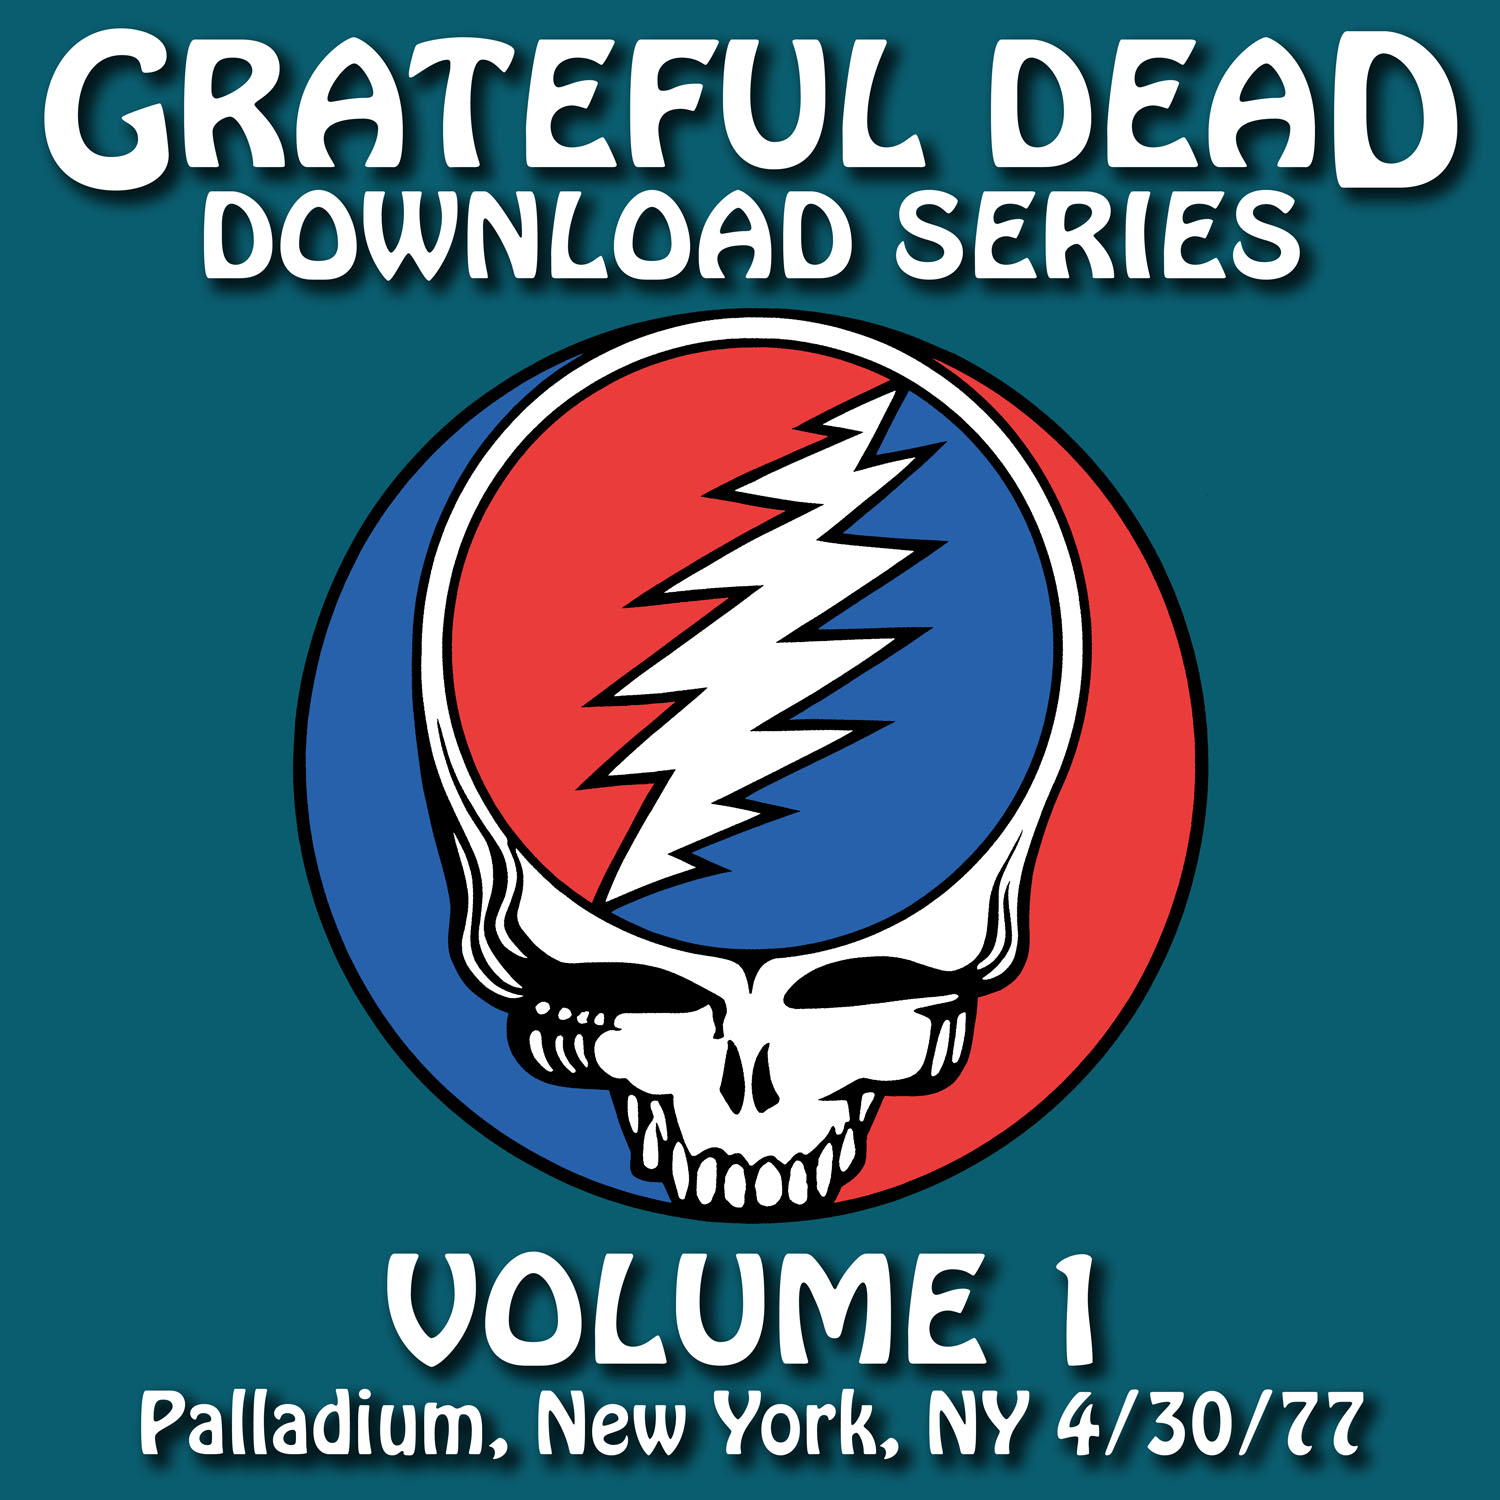 Grateful Dead Download Series 1 album cover artwork